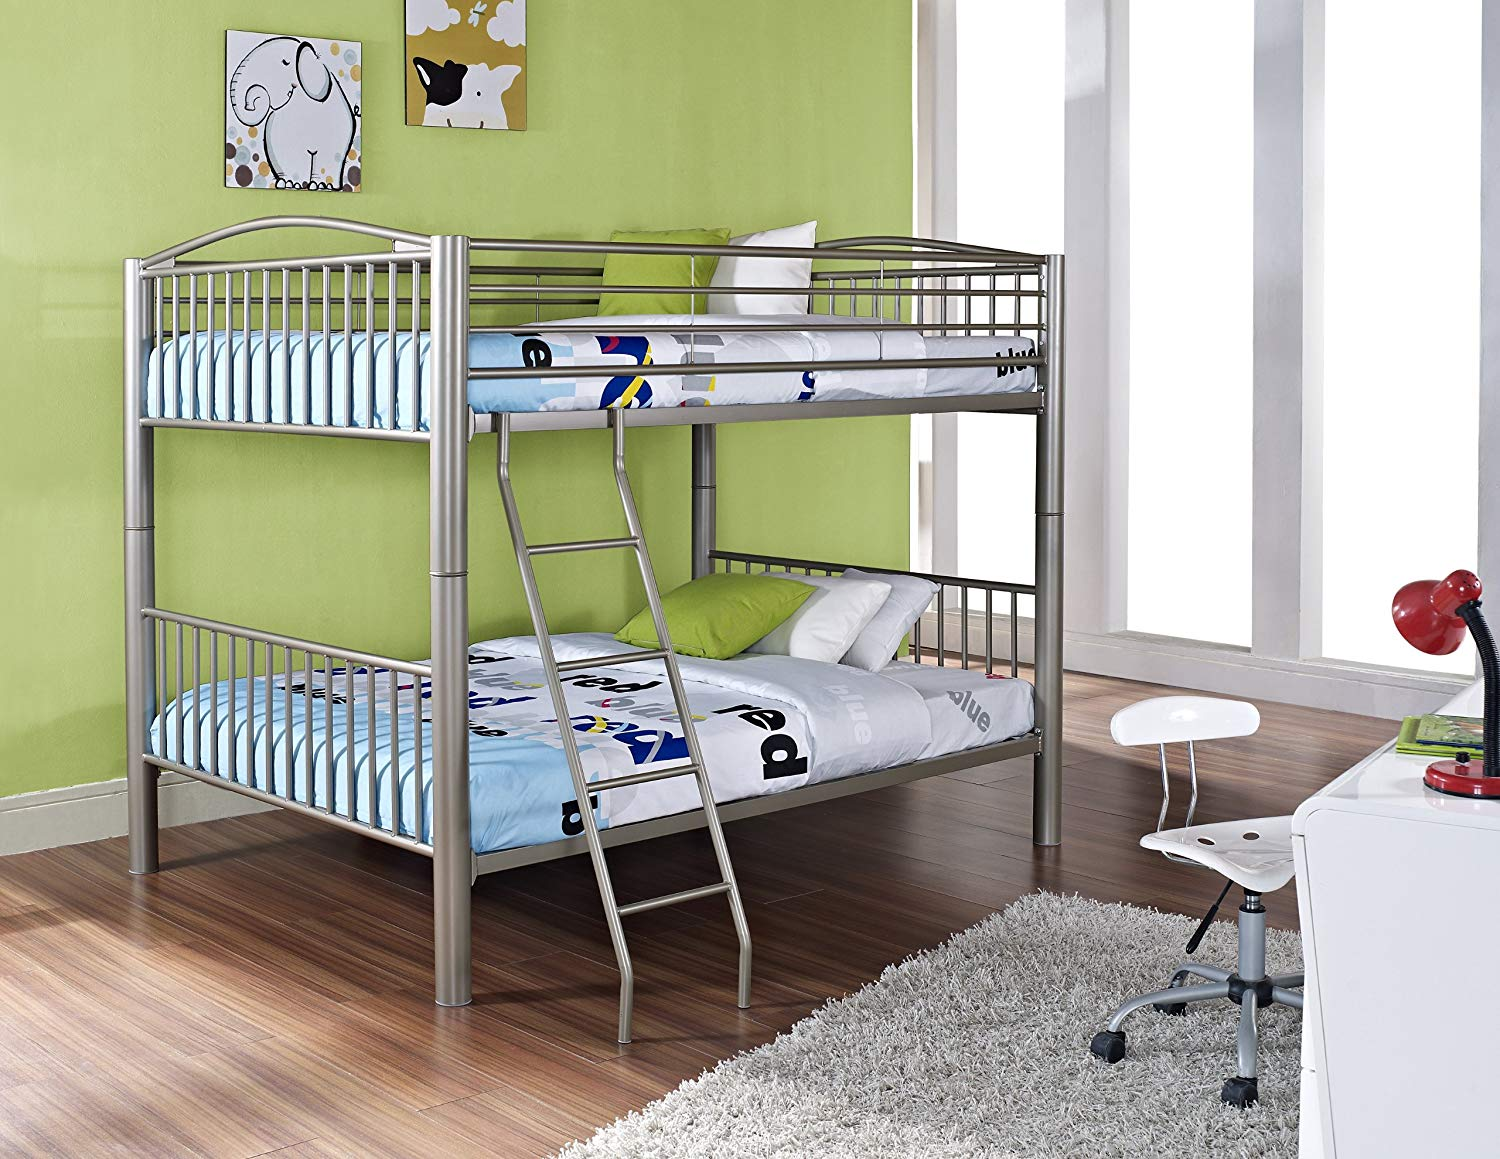 Image of: Rooms to Go Kids Bunk Beds for Camper Ideas